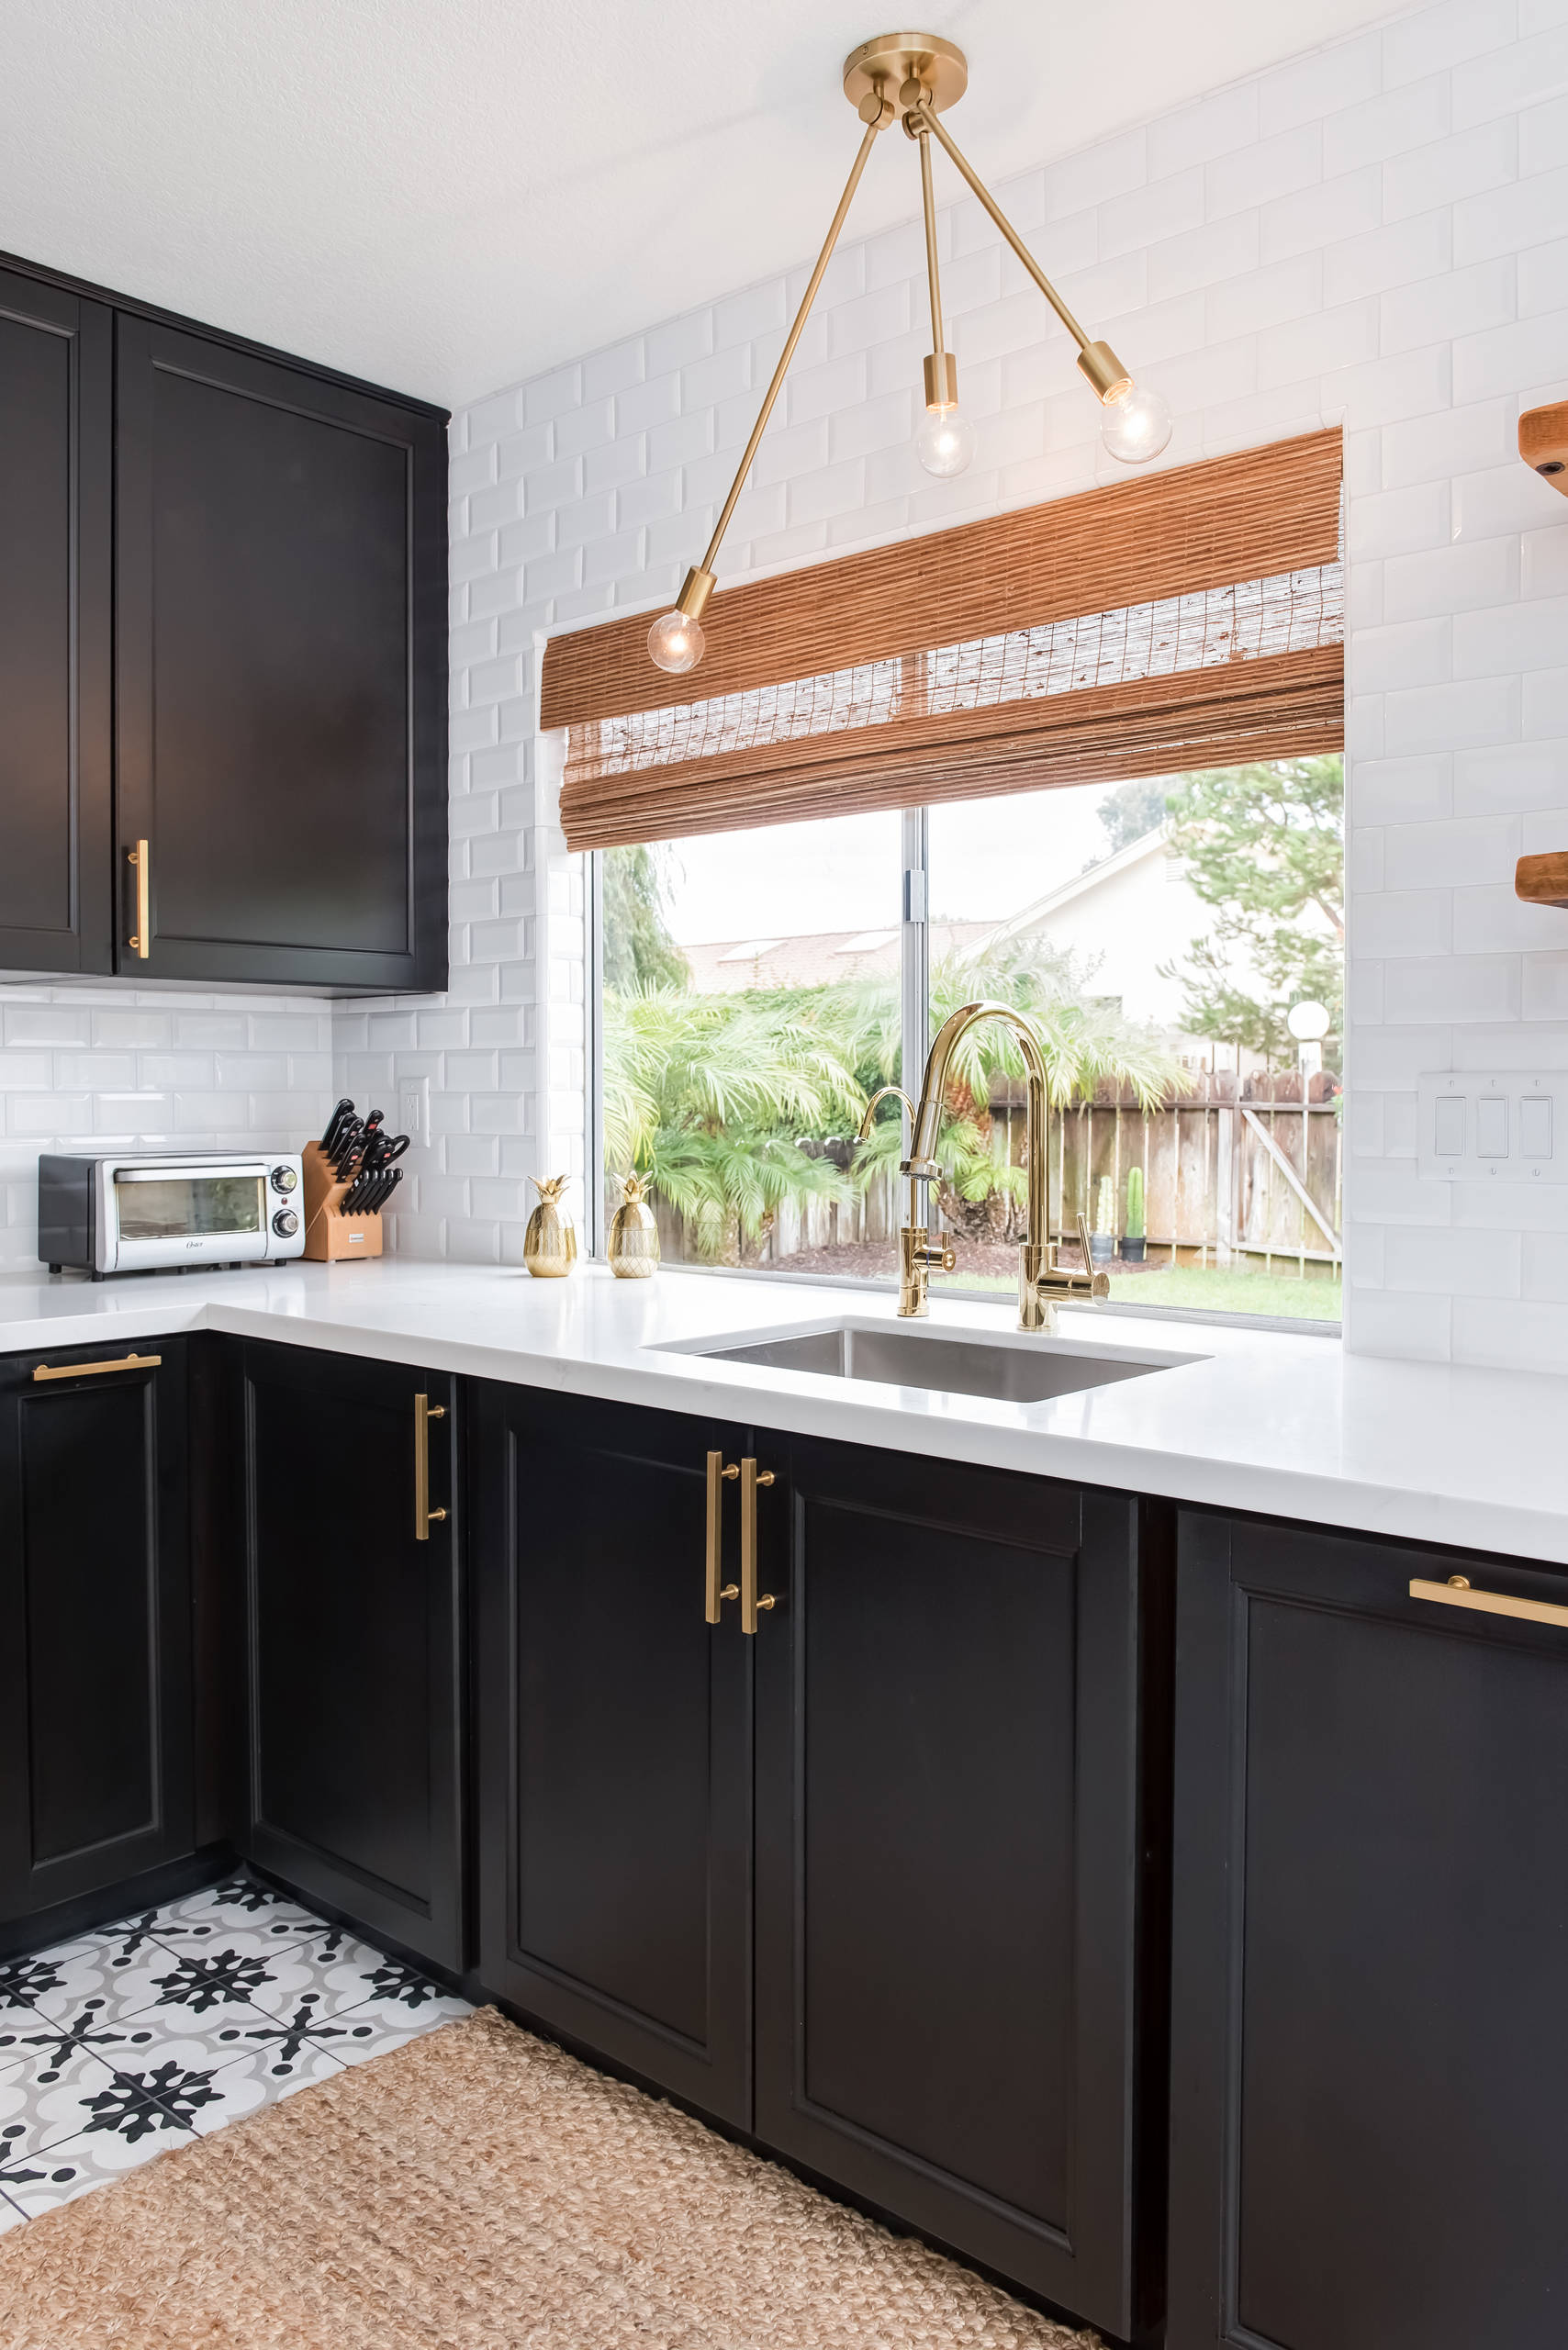 75 Beautiful Mid Century Modern Kitchen With Shaker Cabinets Pictures Ideas January 2021 Houzz